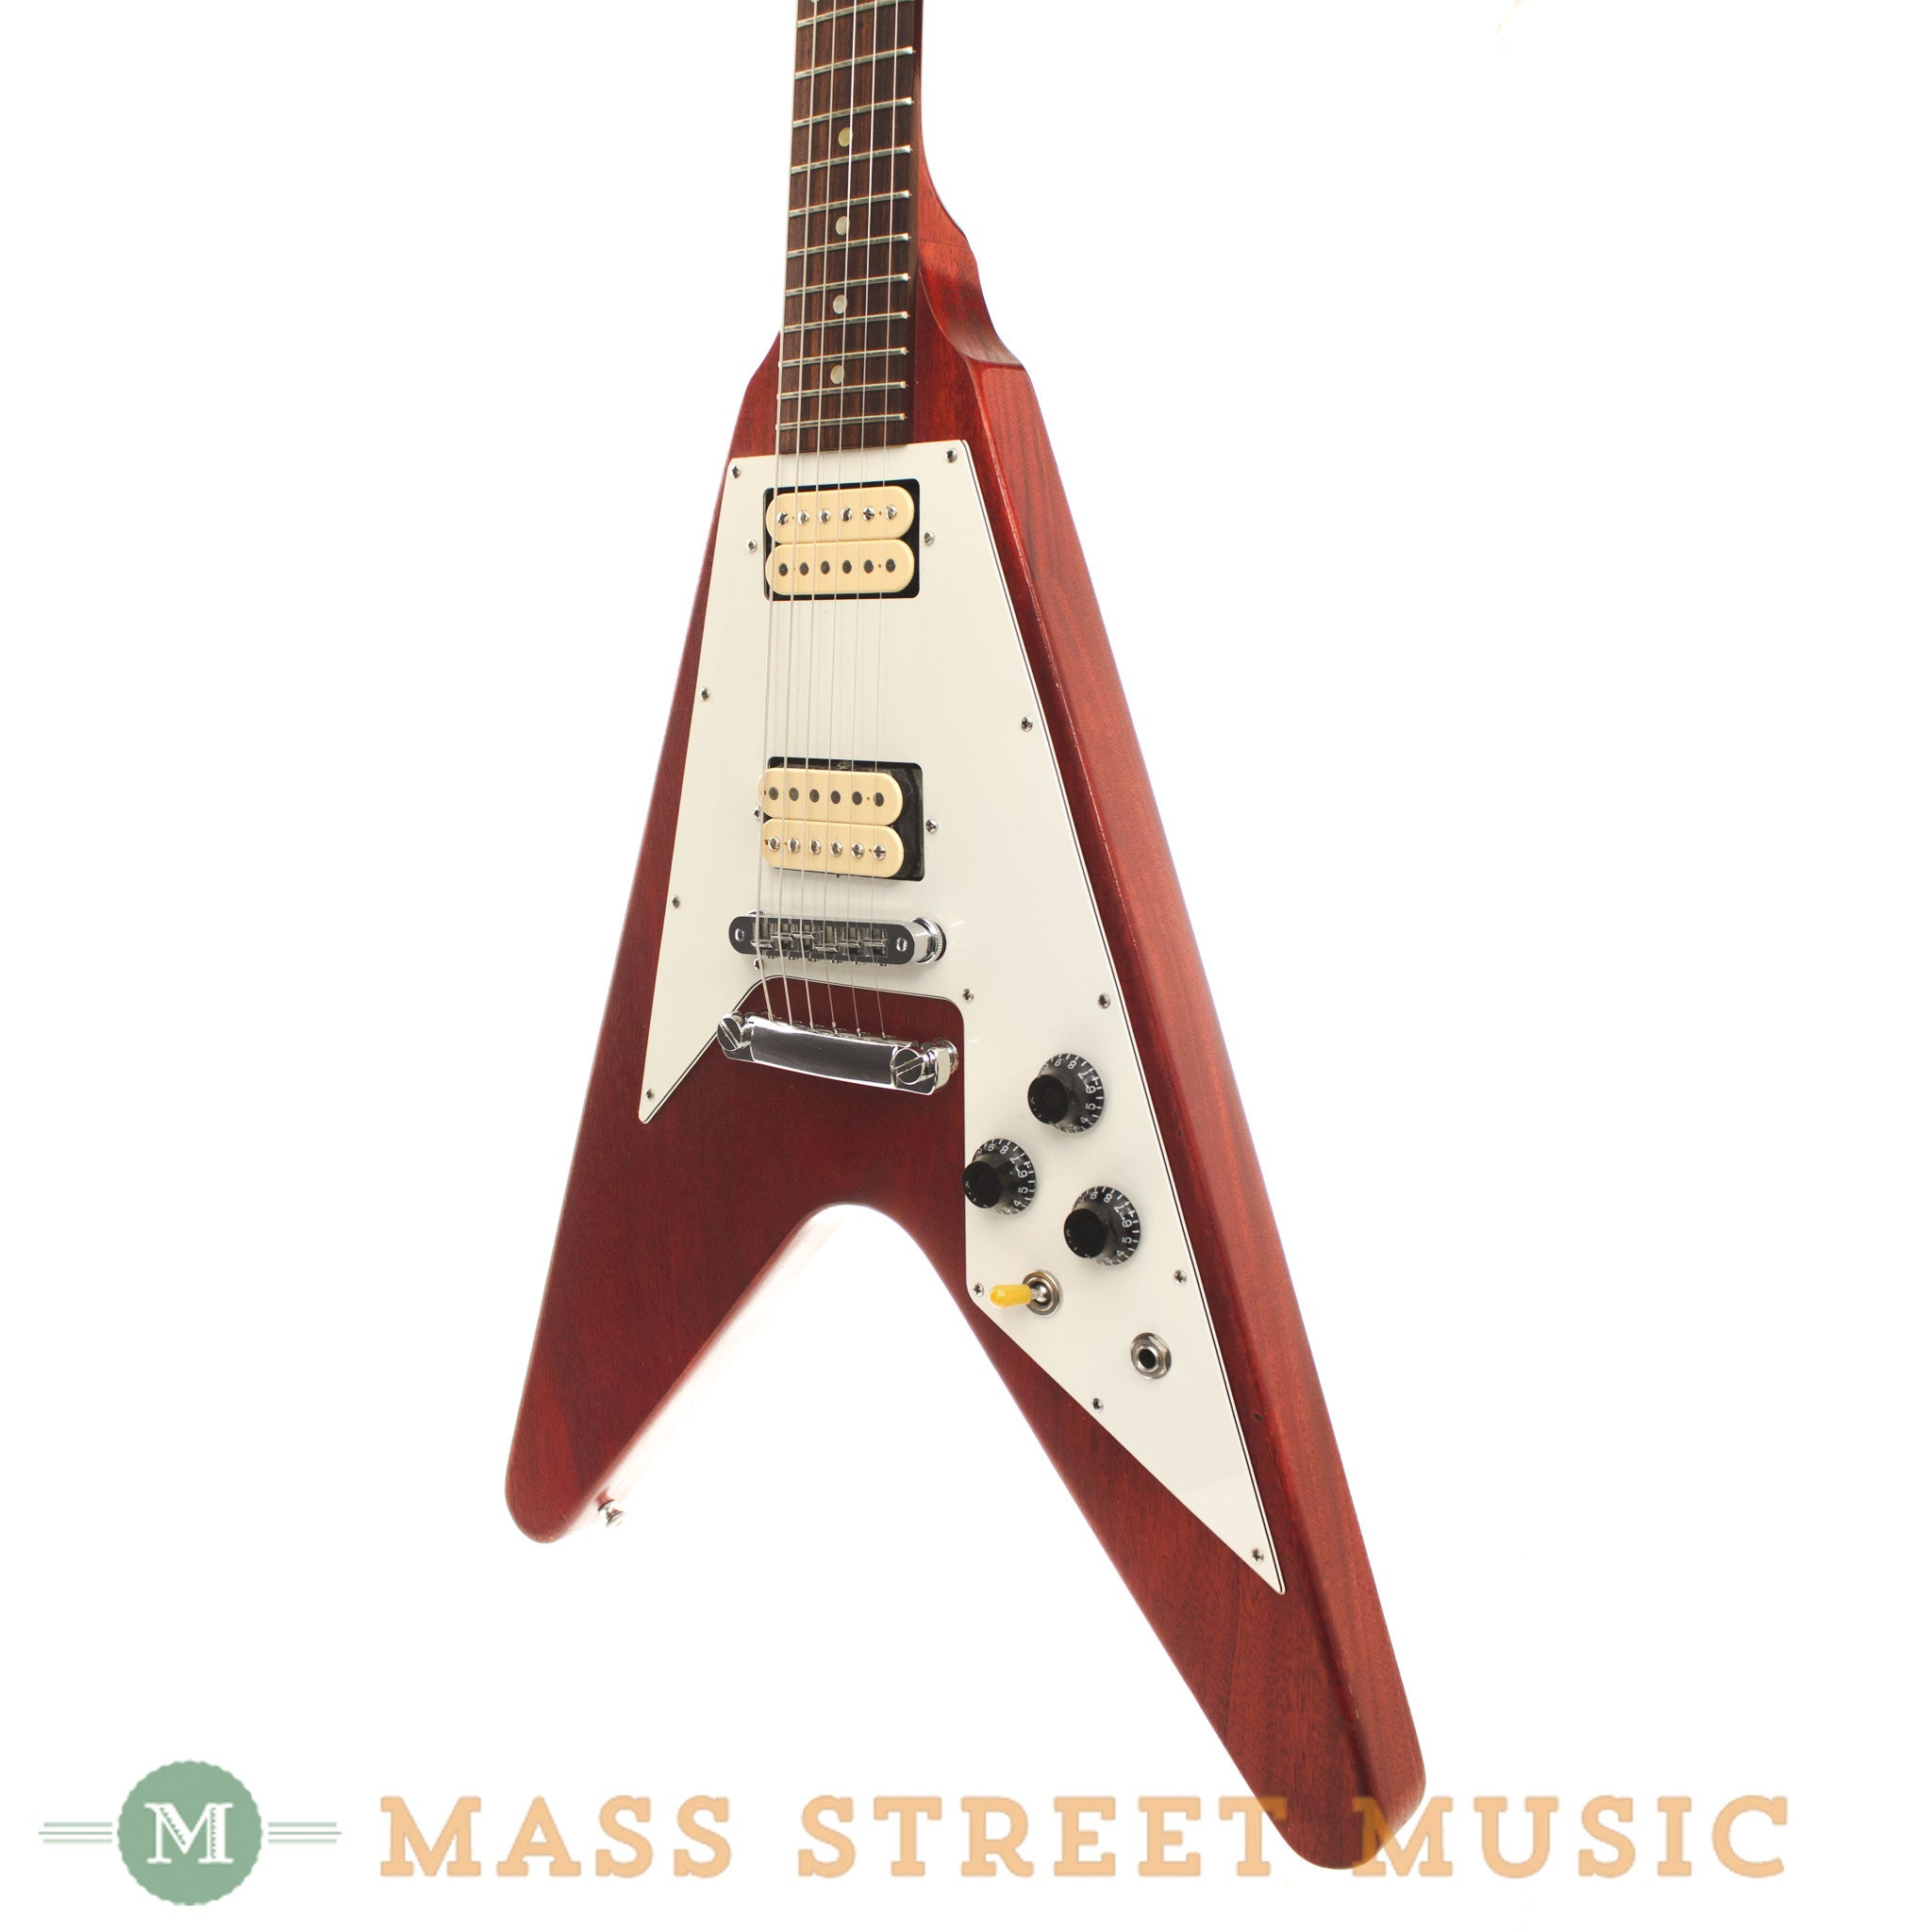 gibson flying v worn cherry 2007 used electric guitar mass street music store. Black Bedroom Furniture Sets. Home Design Ideas